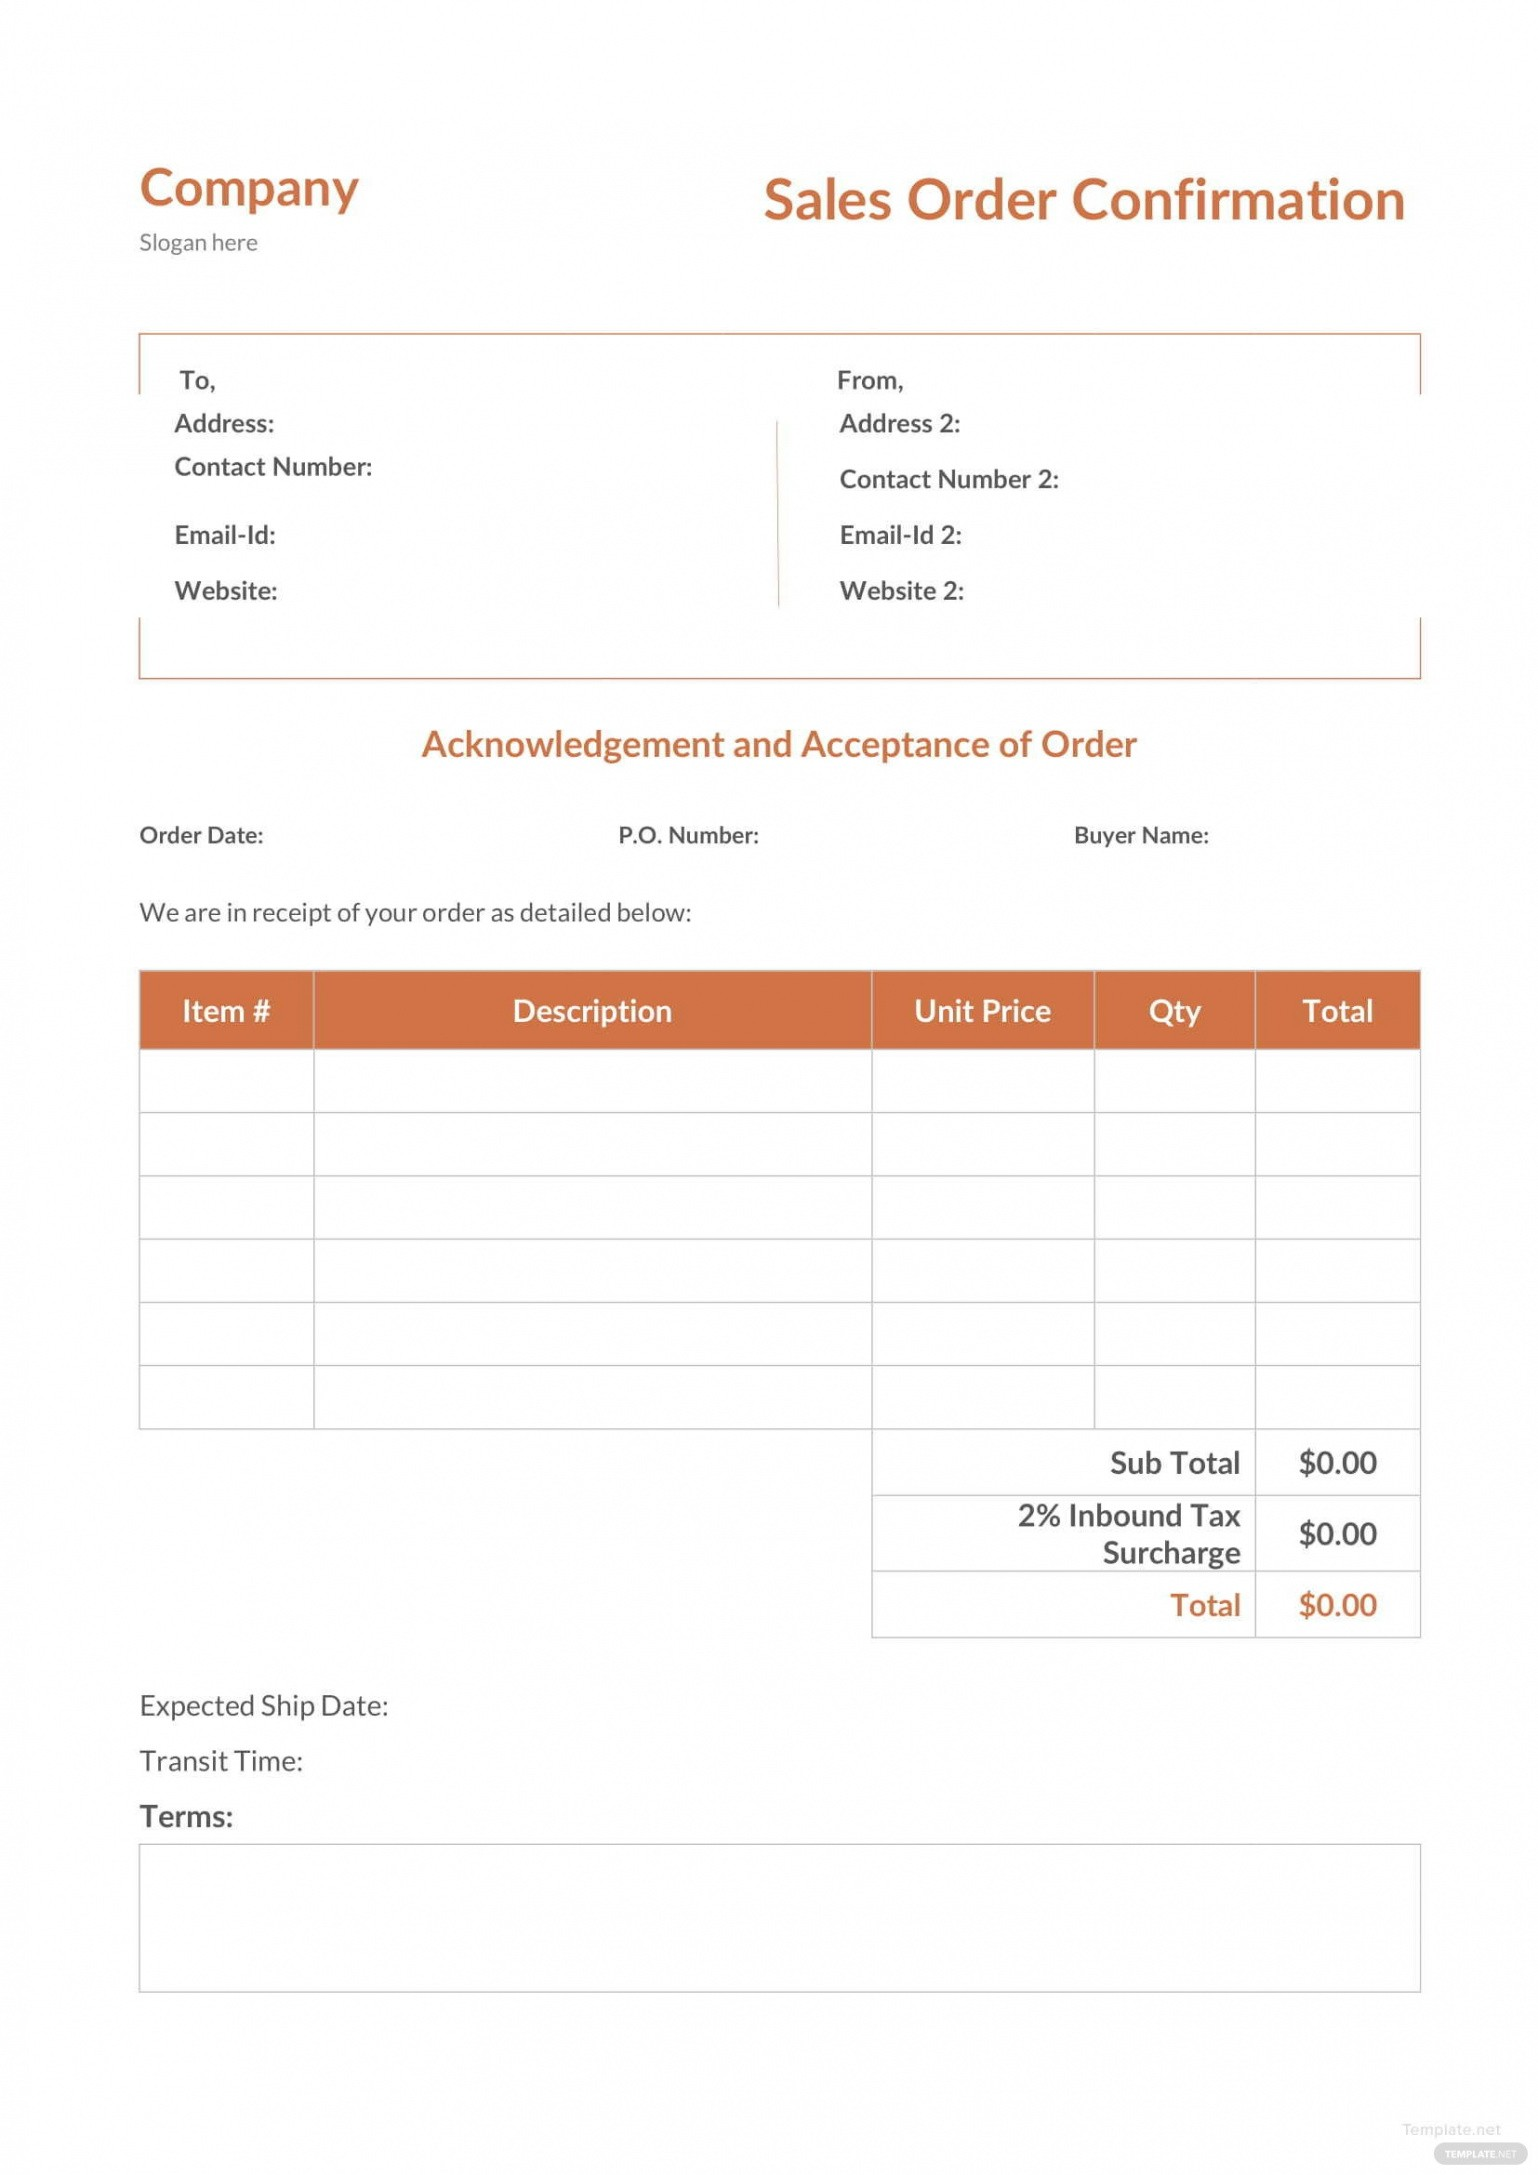 costum purchase order email template word sample